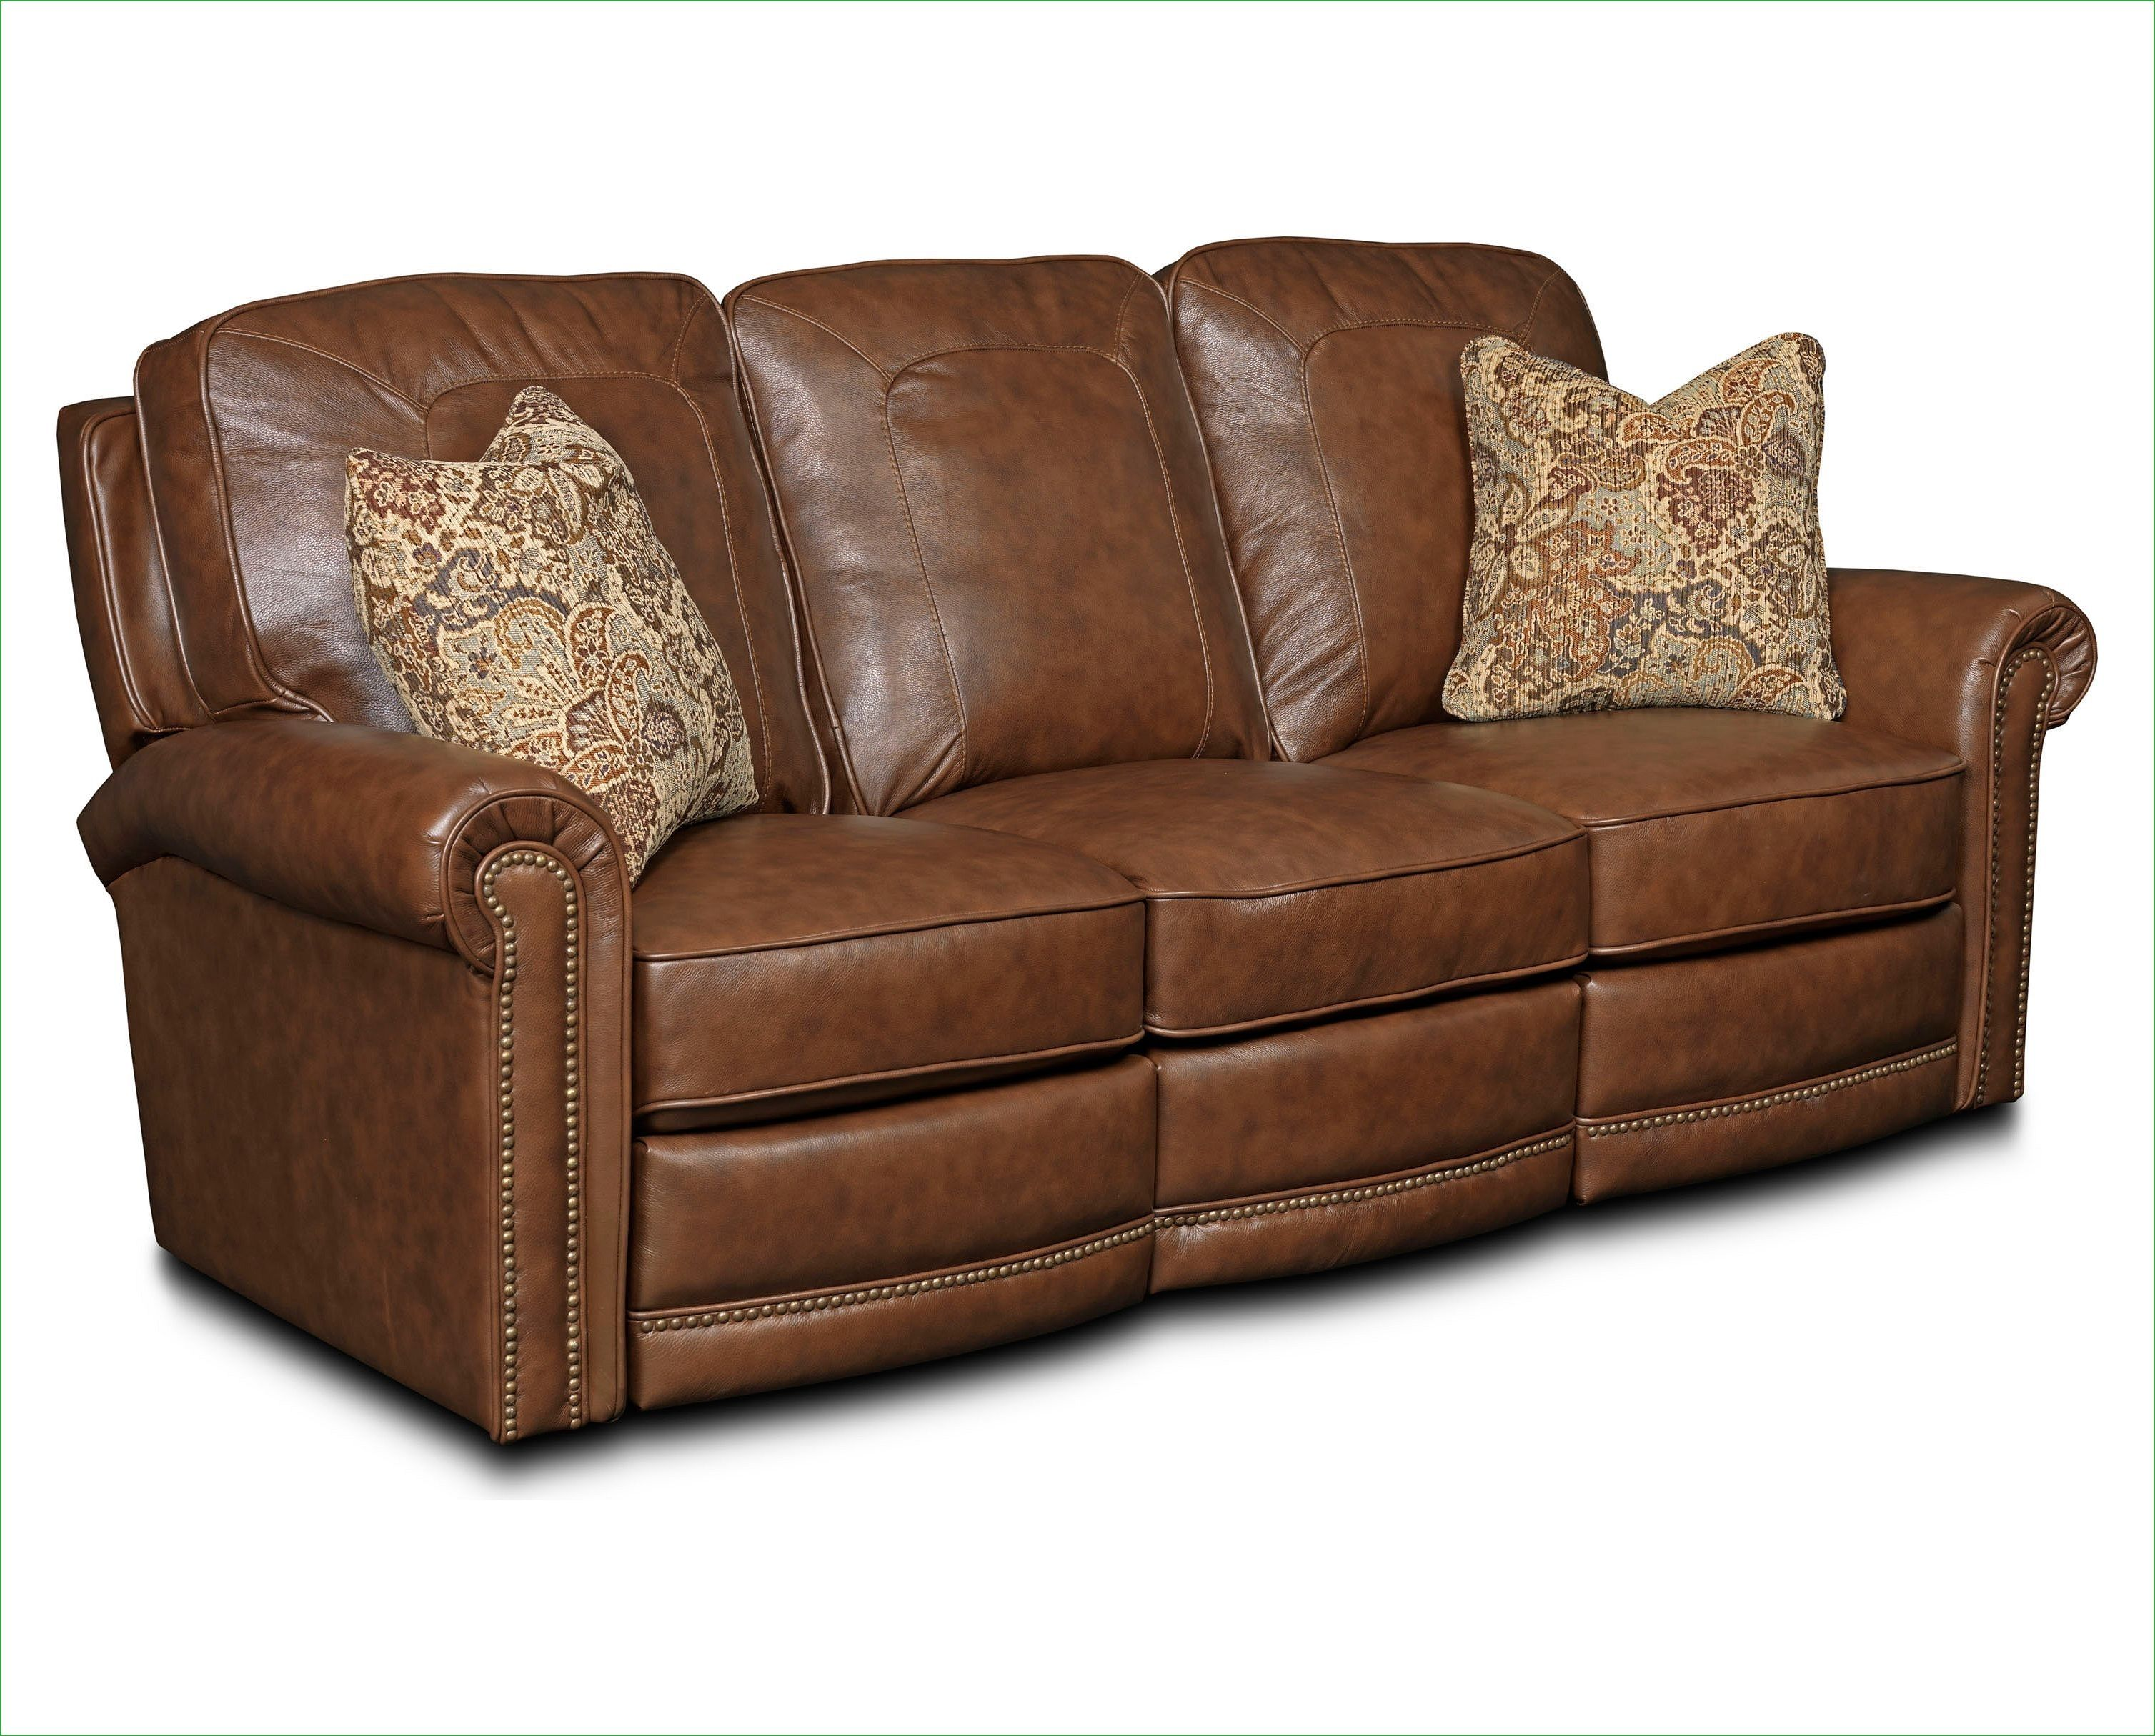 Chesterfield Ecksofa Weiss 15 Bilder Bentley Leder Sectional Sofa Sofa Sofa Pinterest